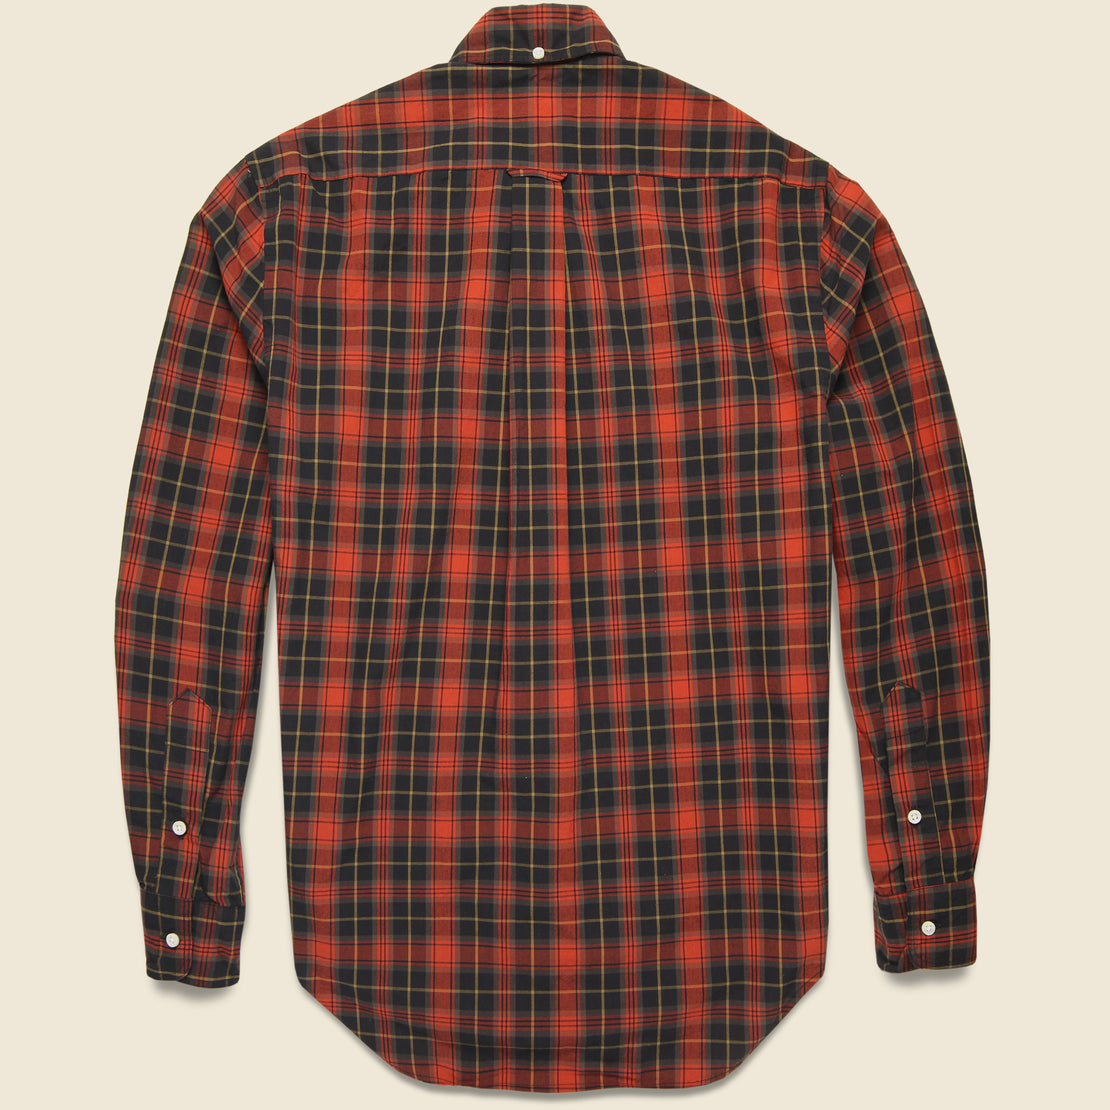 Beefy Poplin Shirt - Black/Red